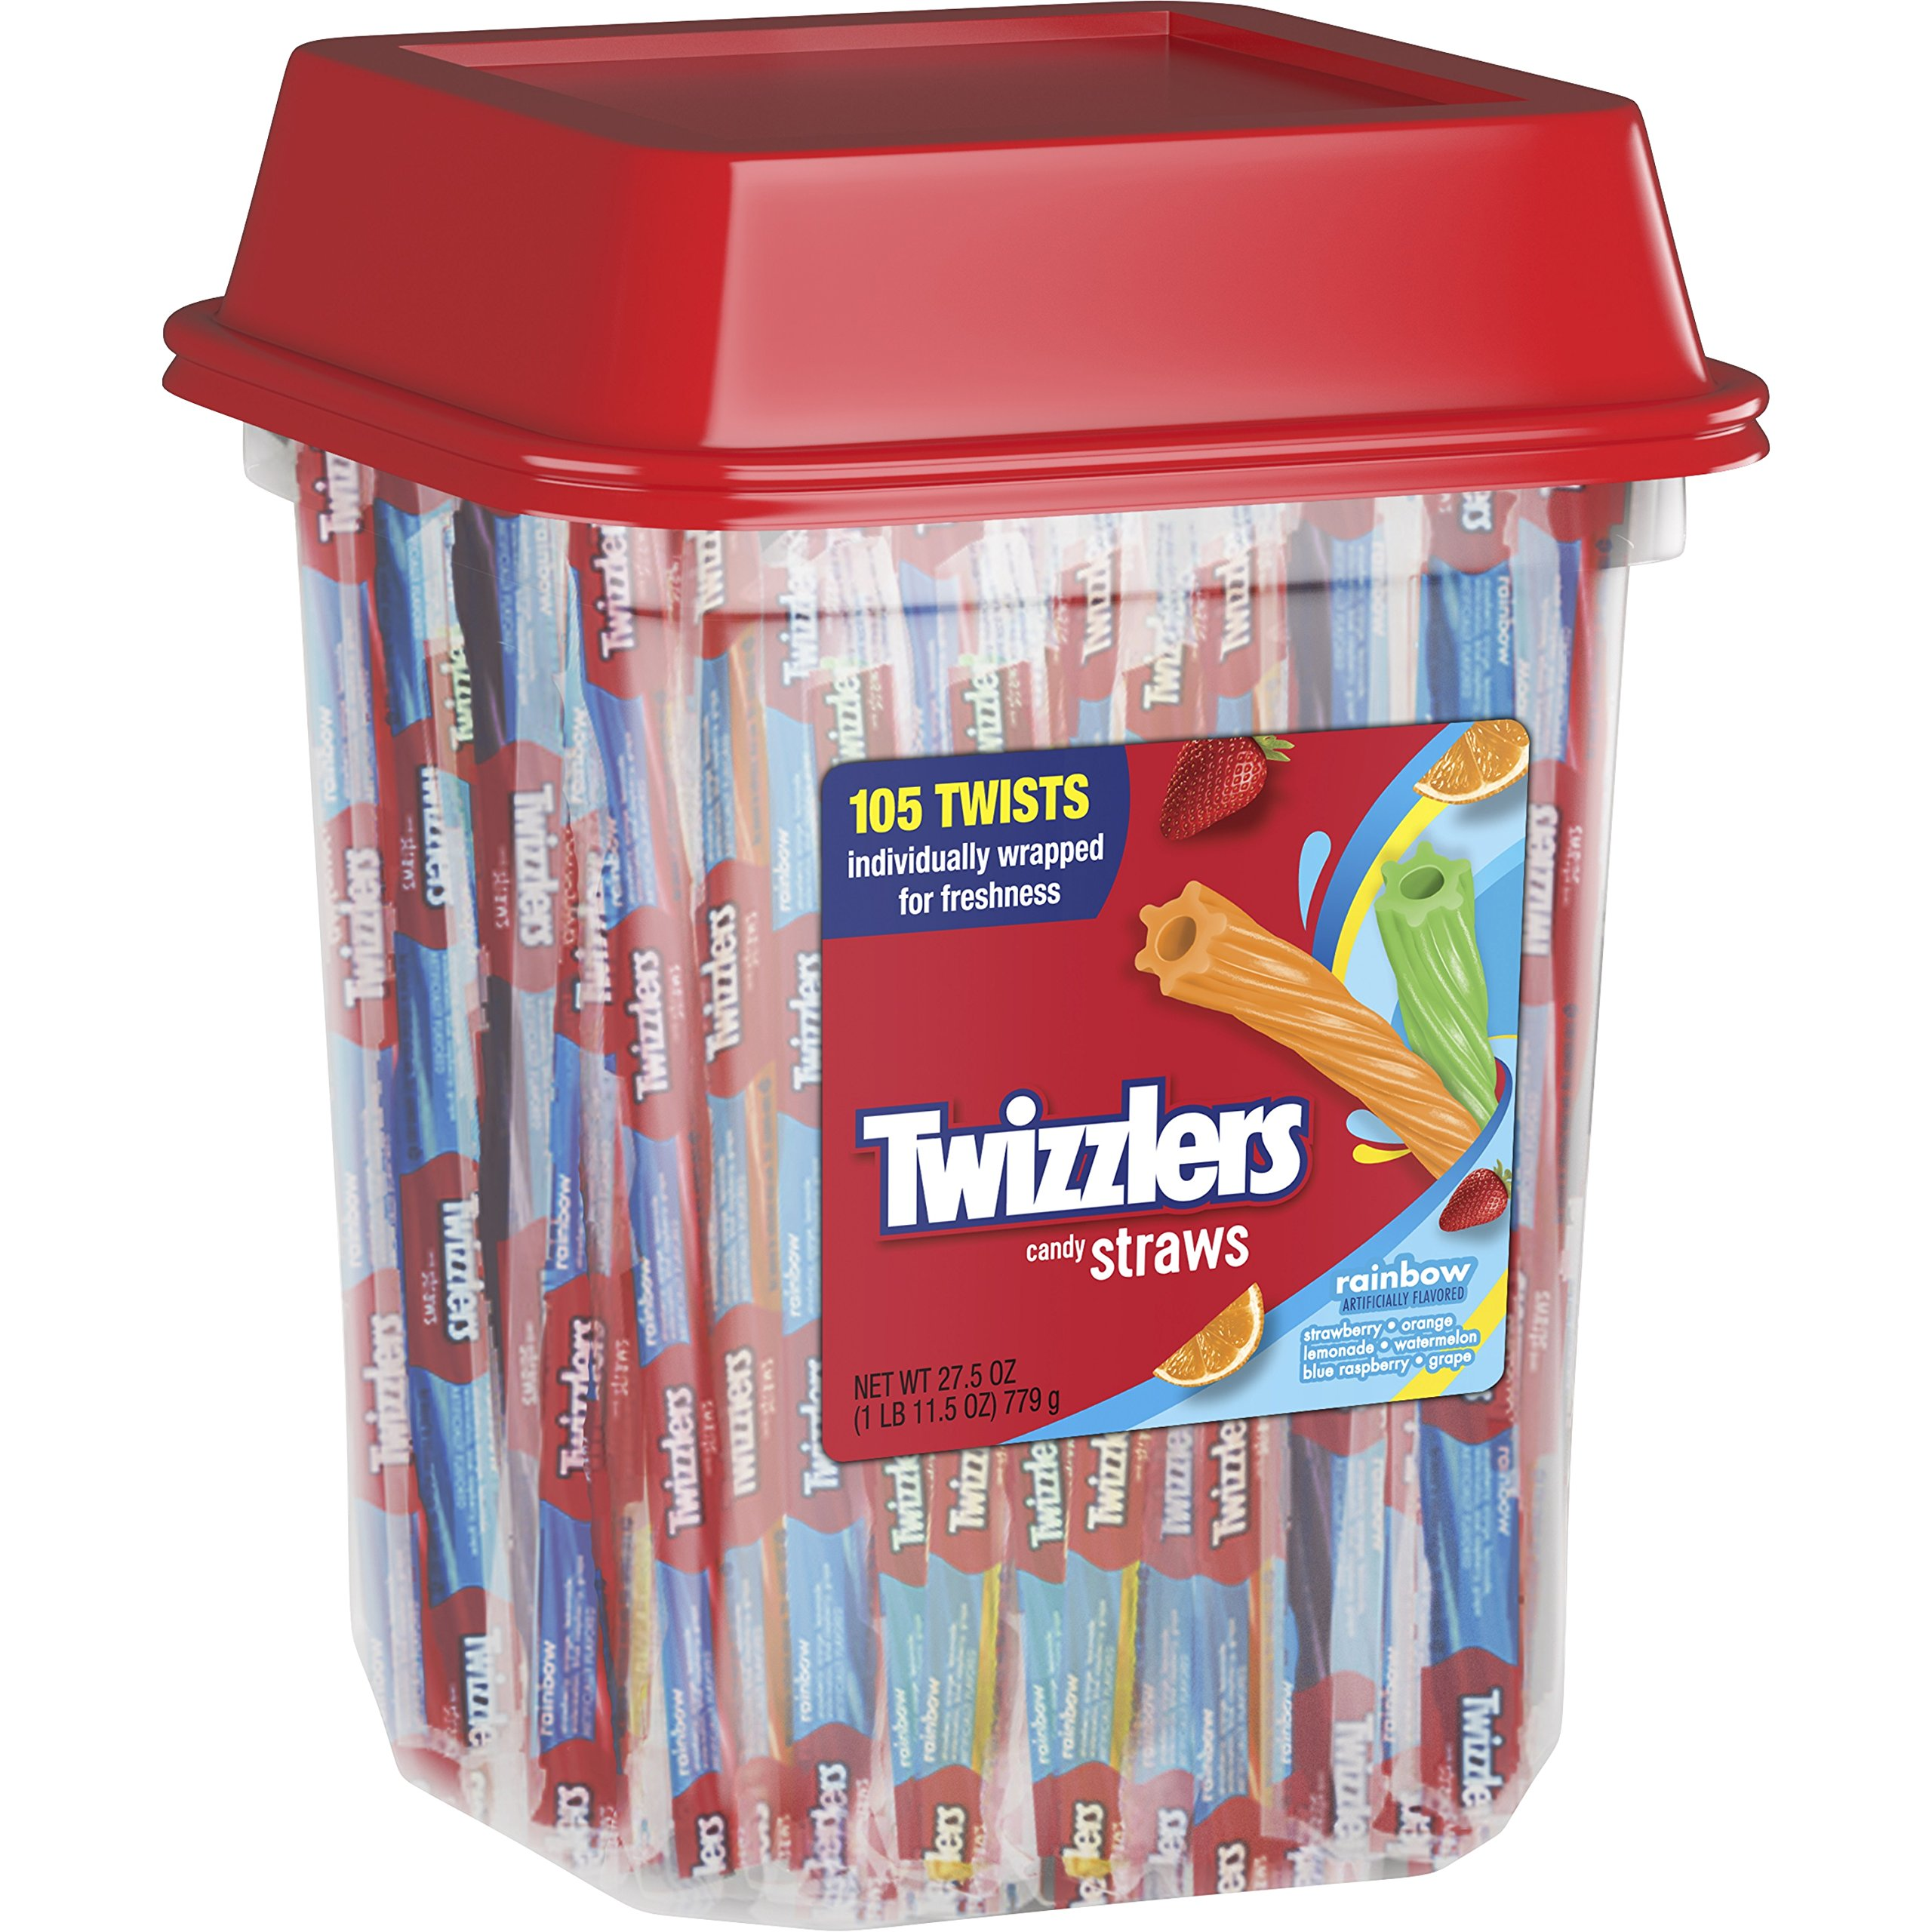 TWIZZLERS Licorice Candy, Rainbow Straws, 105 Count, 27.5 Ounce by Twizzlers